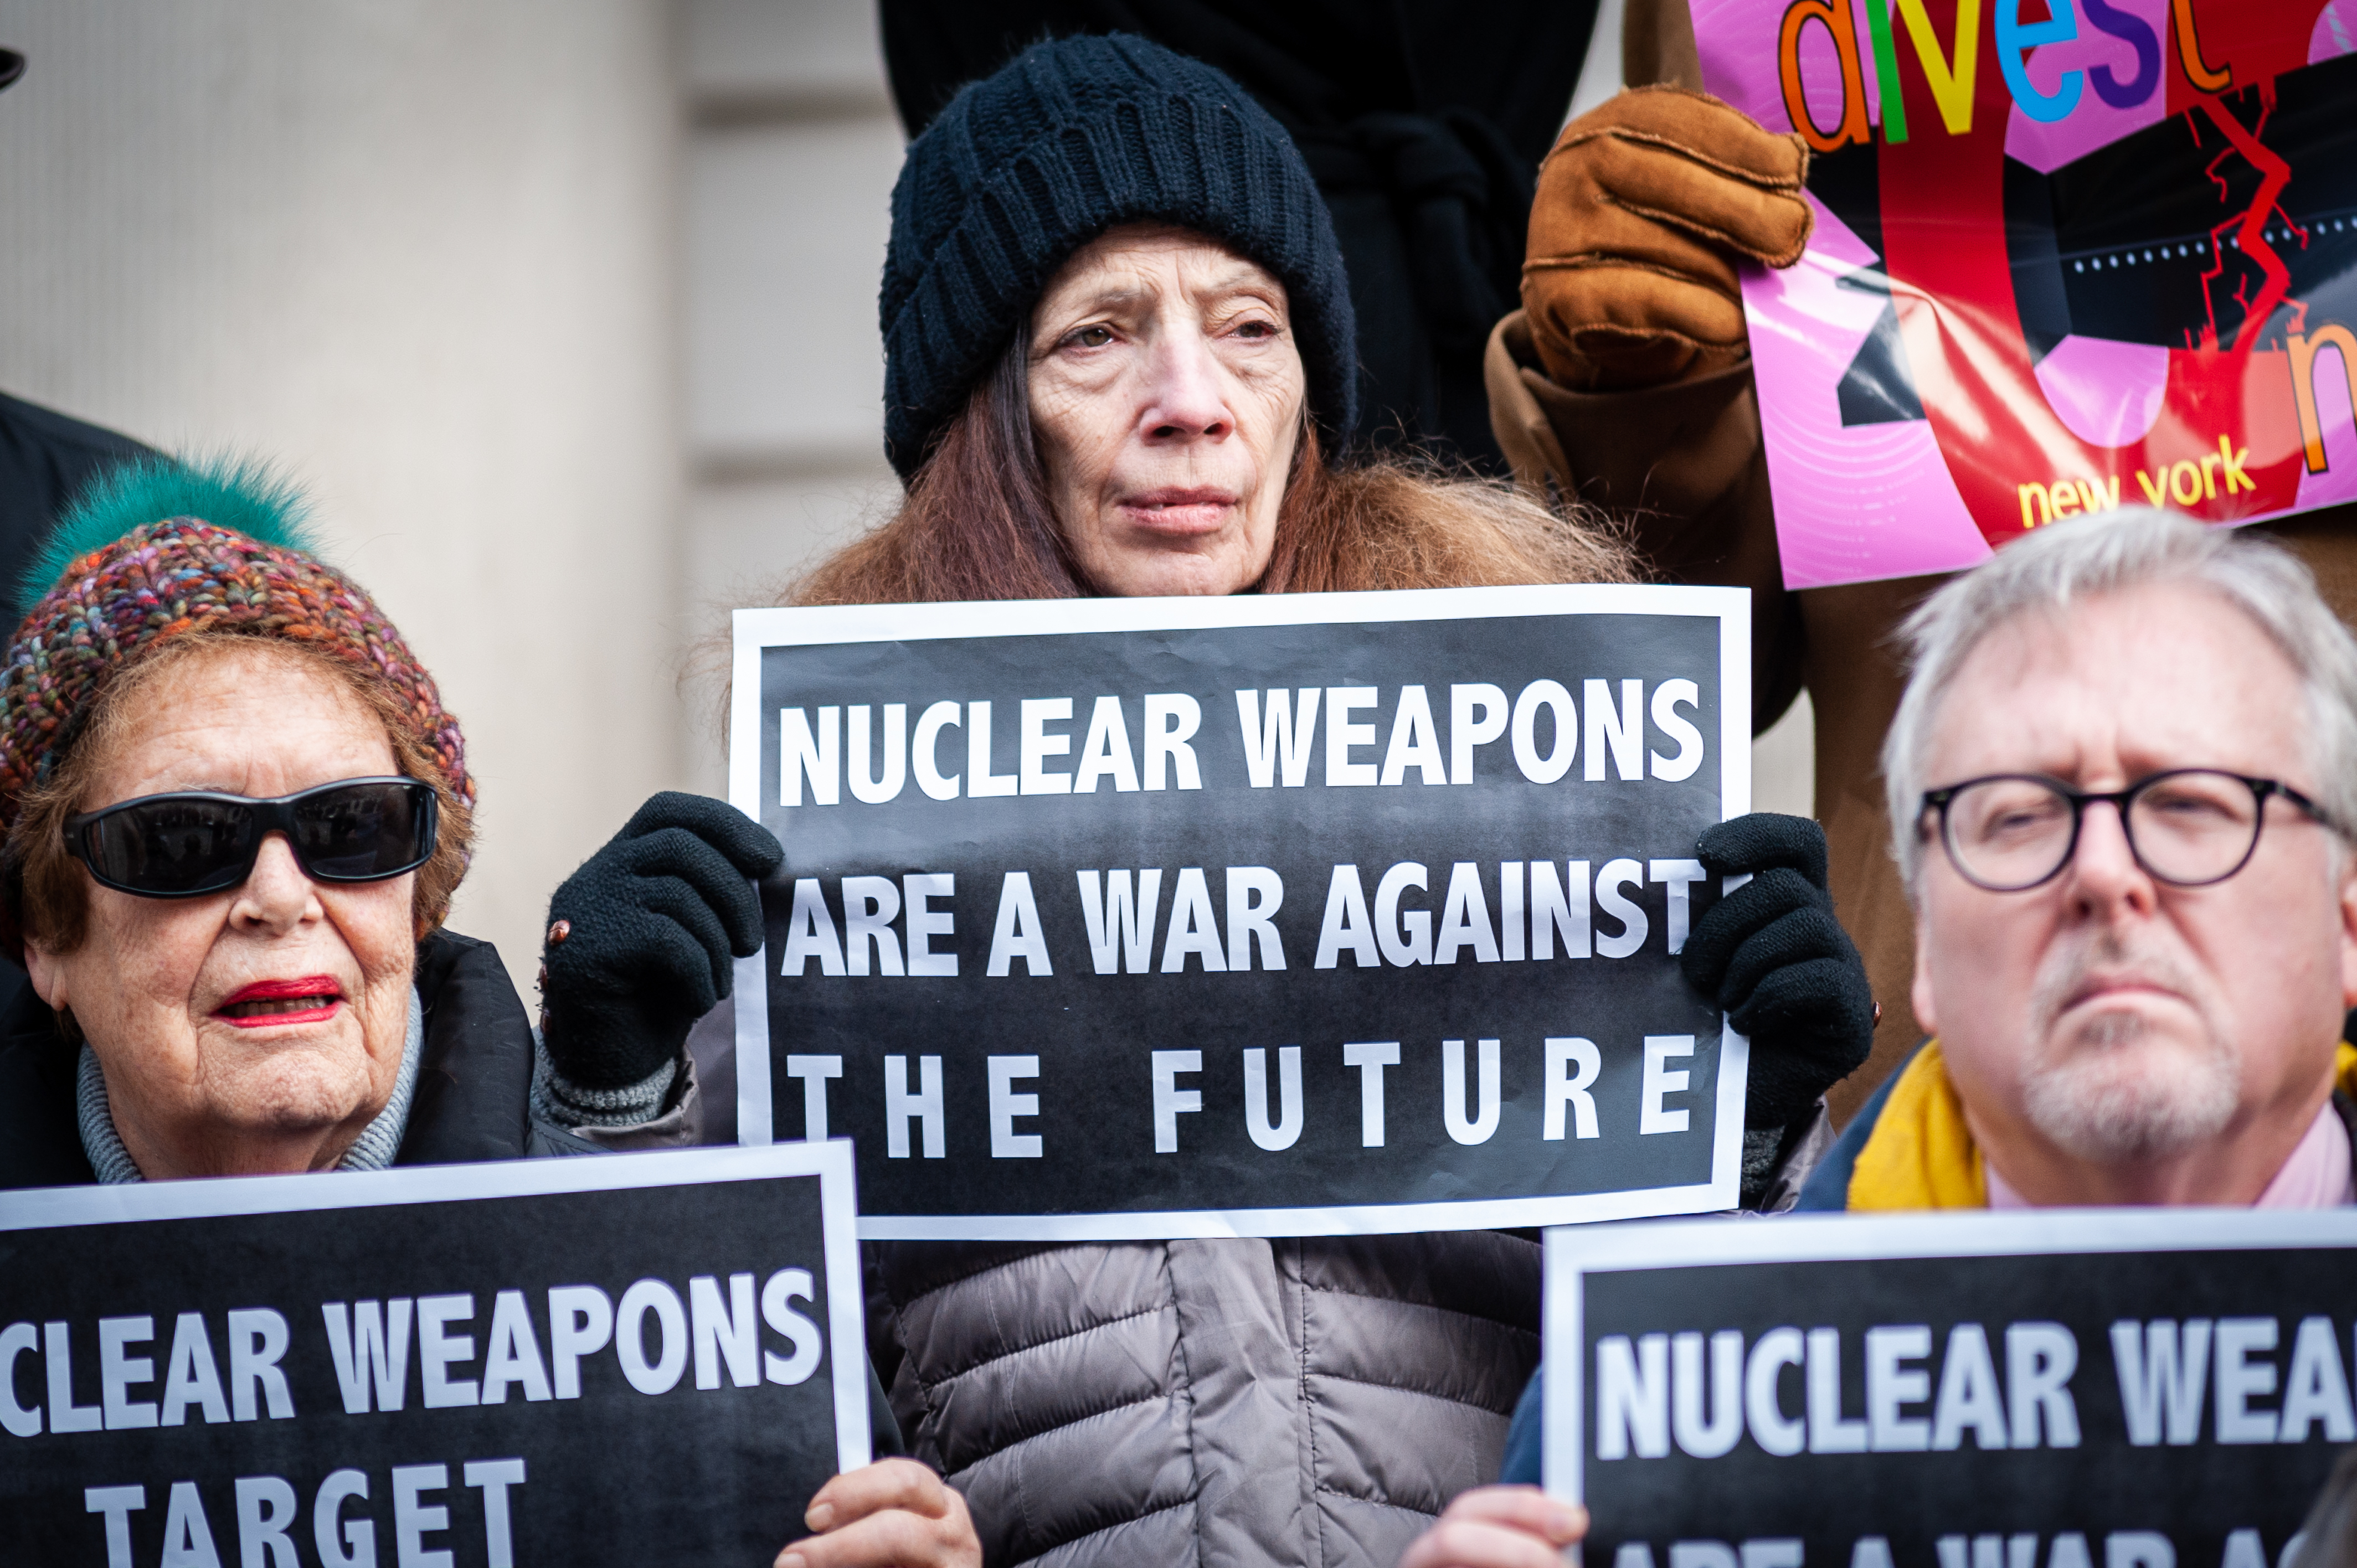 Nuclear Weapon PA Images